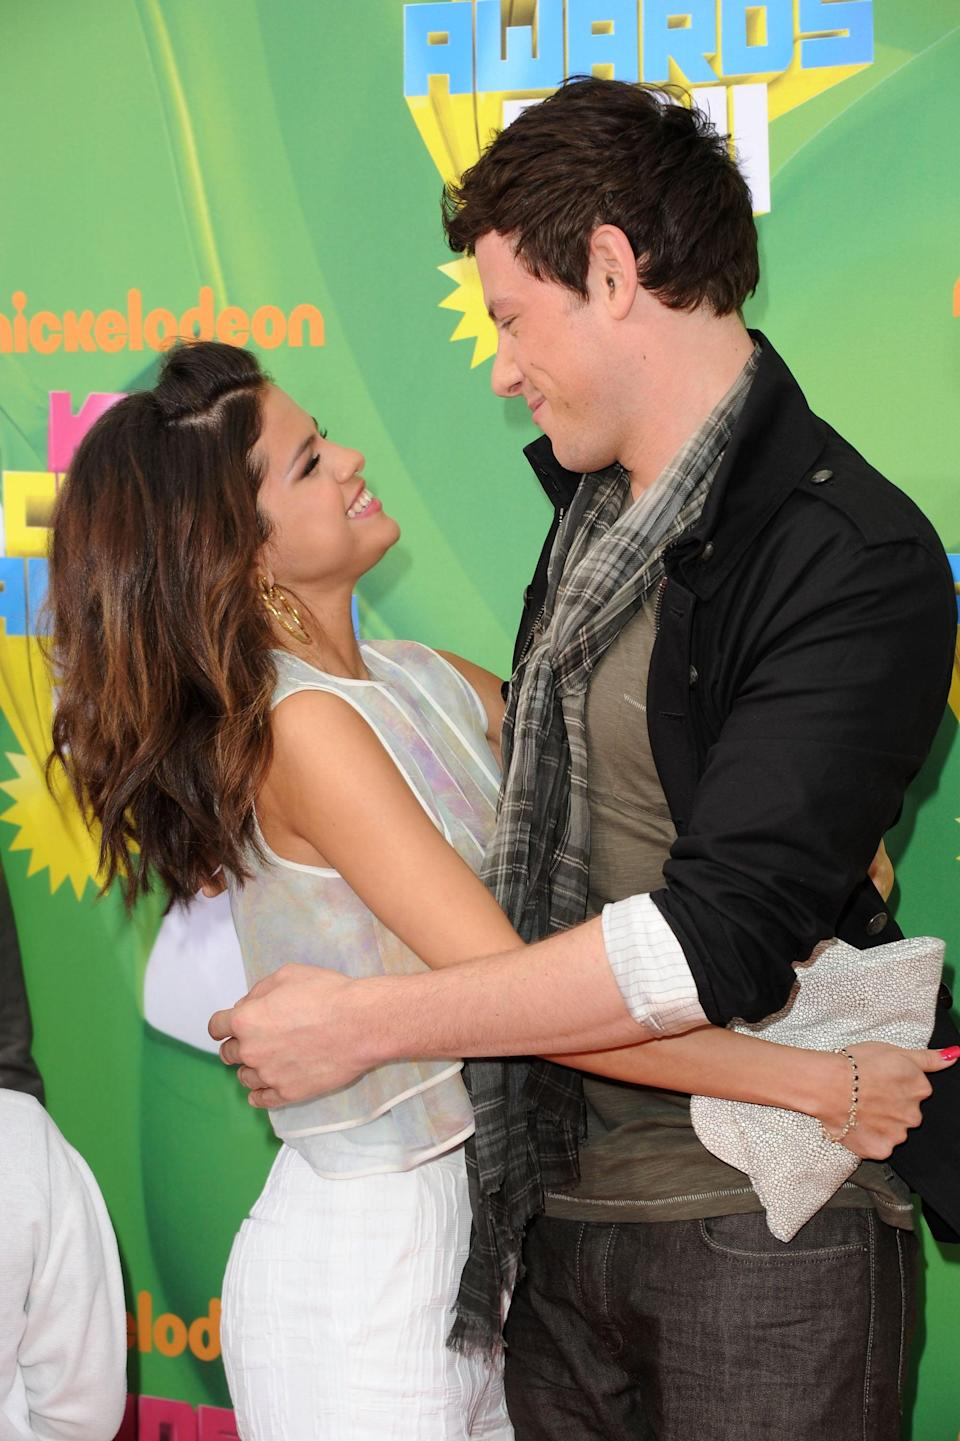 """<p>She shared a sweet hug with <a class=""""link rapid-noclick-resp"""" href=""""https://www.popsugar.com/Cory-Monteith"""" rel=""""nofollow noopener"""" target=""""_blank"""" data-ylk=""""slk:Cory Monteith"""">Cory Monteith</a> on the Kids' Choice Awards red carpet in LA.</p>"""